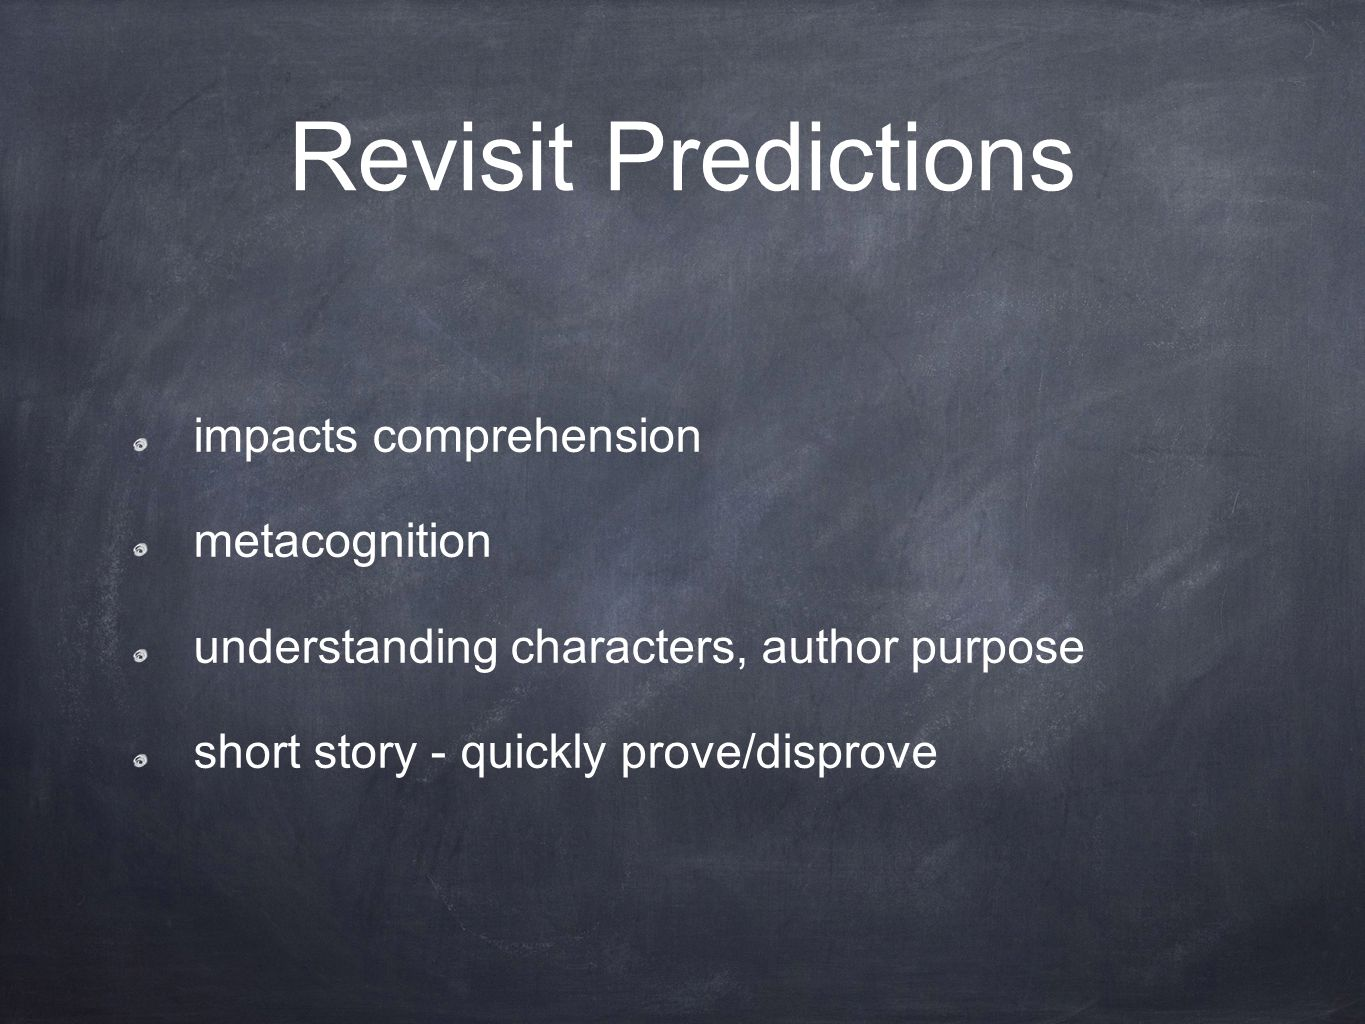 Revisit Predictions impacts comprehension metacognition understanding characters, author purpose short story - quickly prove/disprove